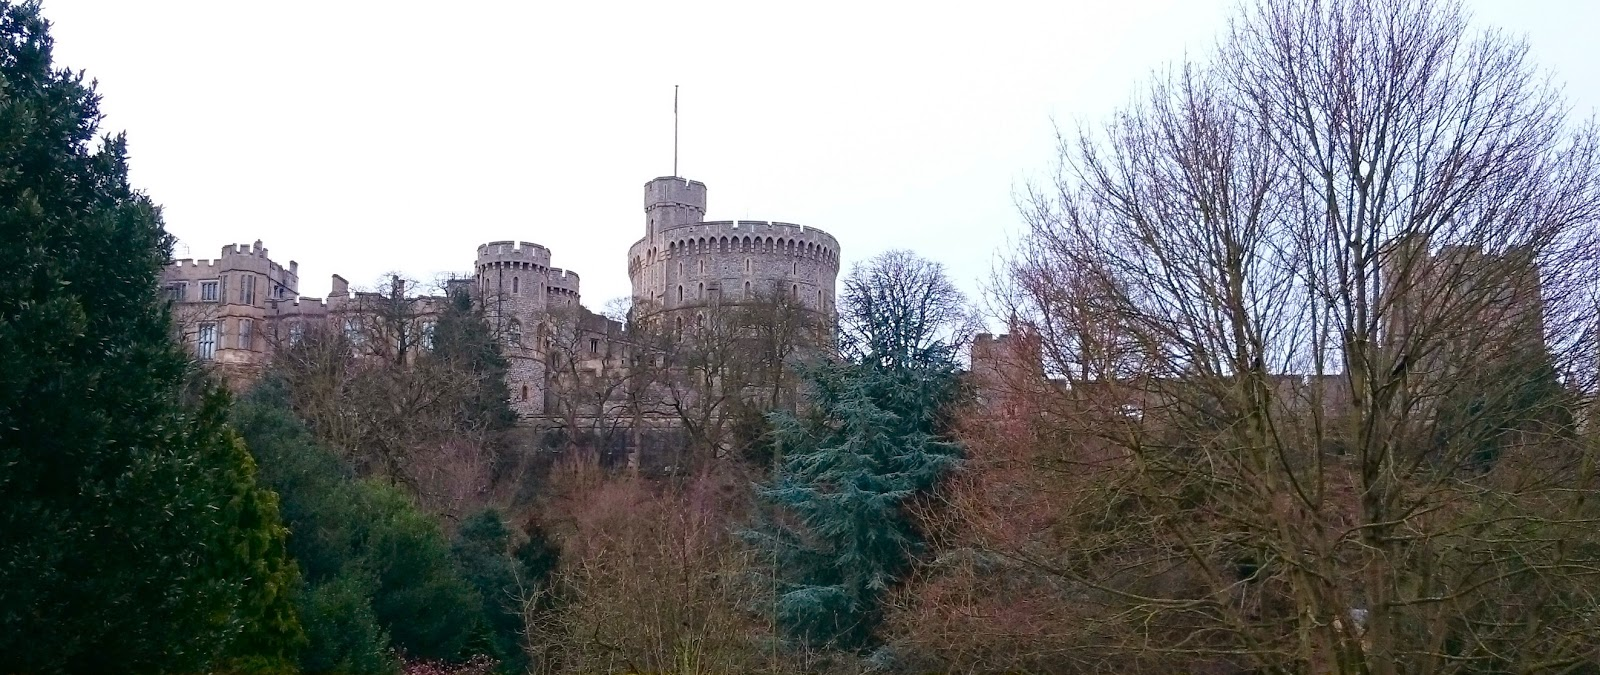 The skyline of Windsor Castle